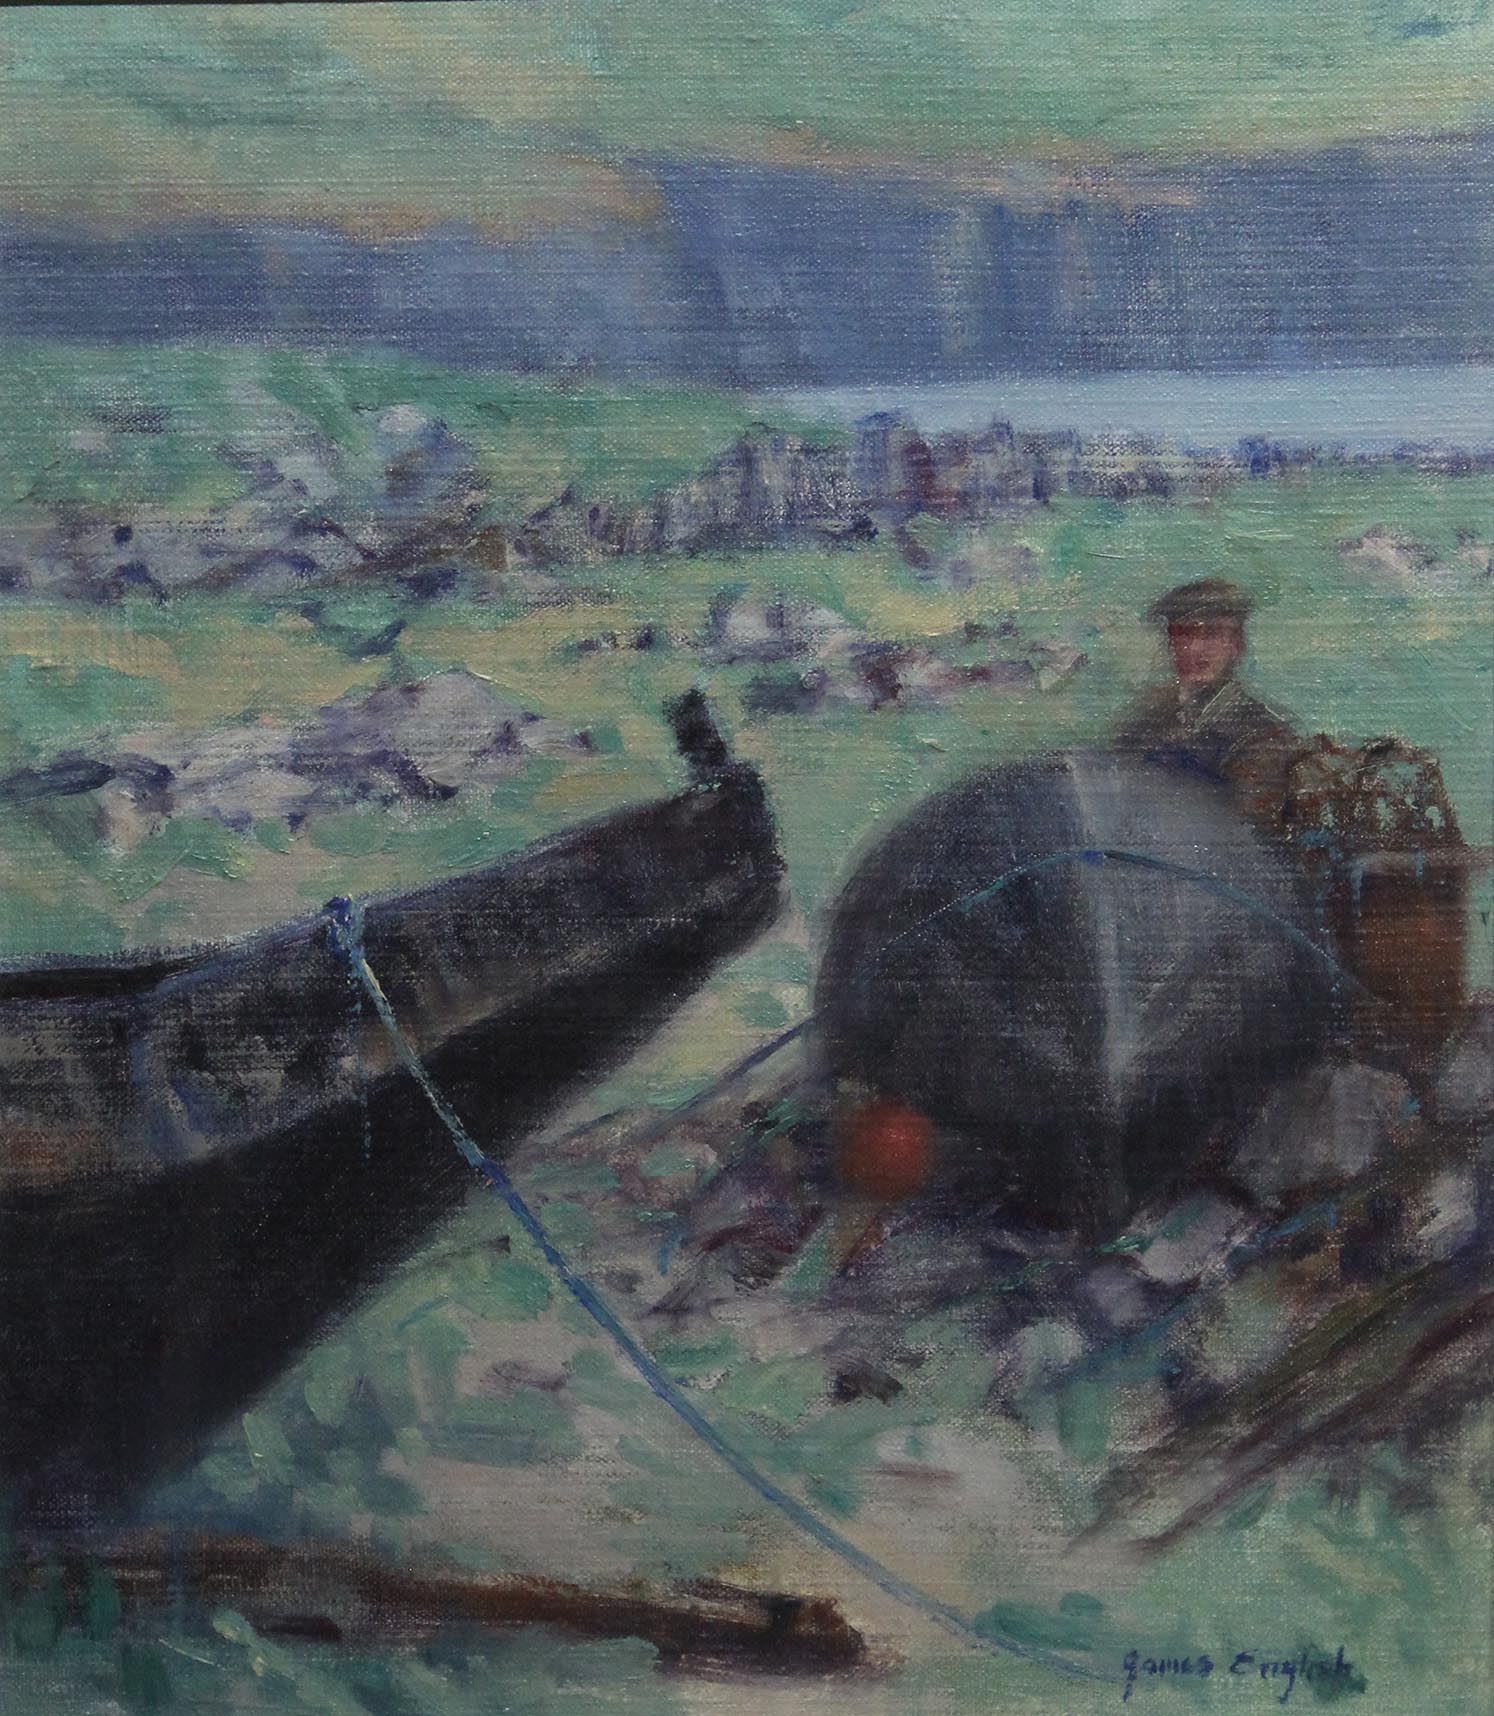 "Lot 2 - James English DOOLIN CURRACHS Oil on canvas, stretched on board, 12"" x 9 3/4"" (30.5 x 24.8 cm),"